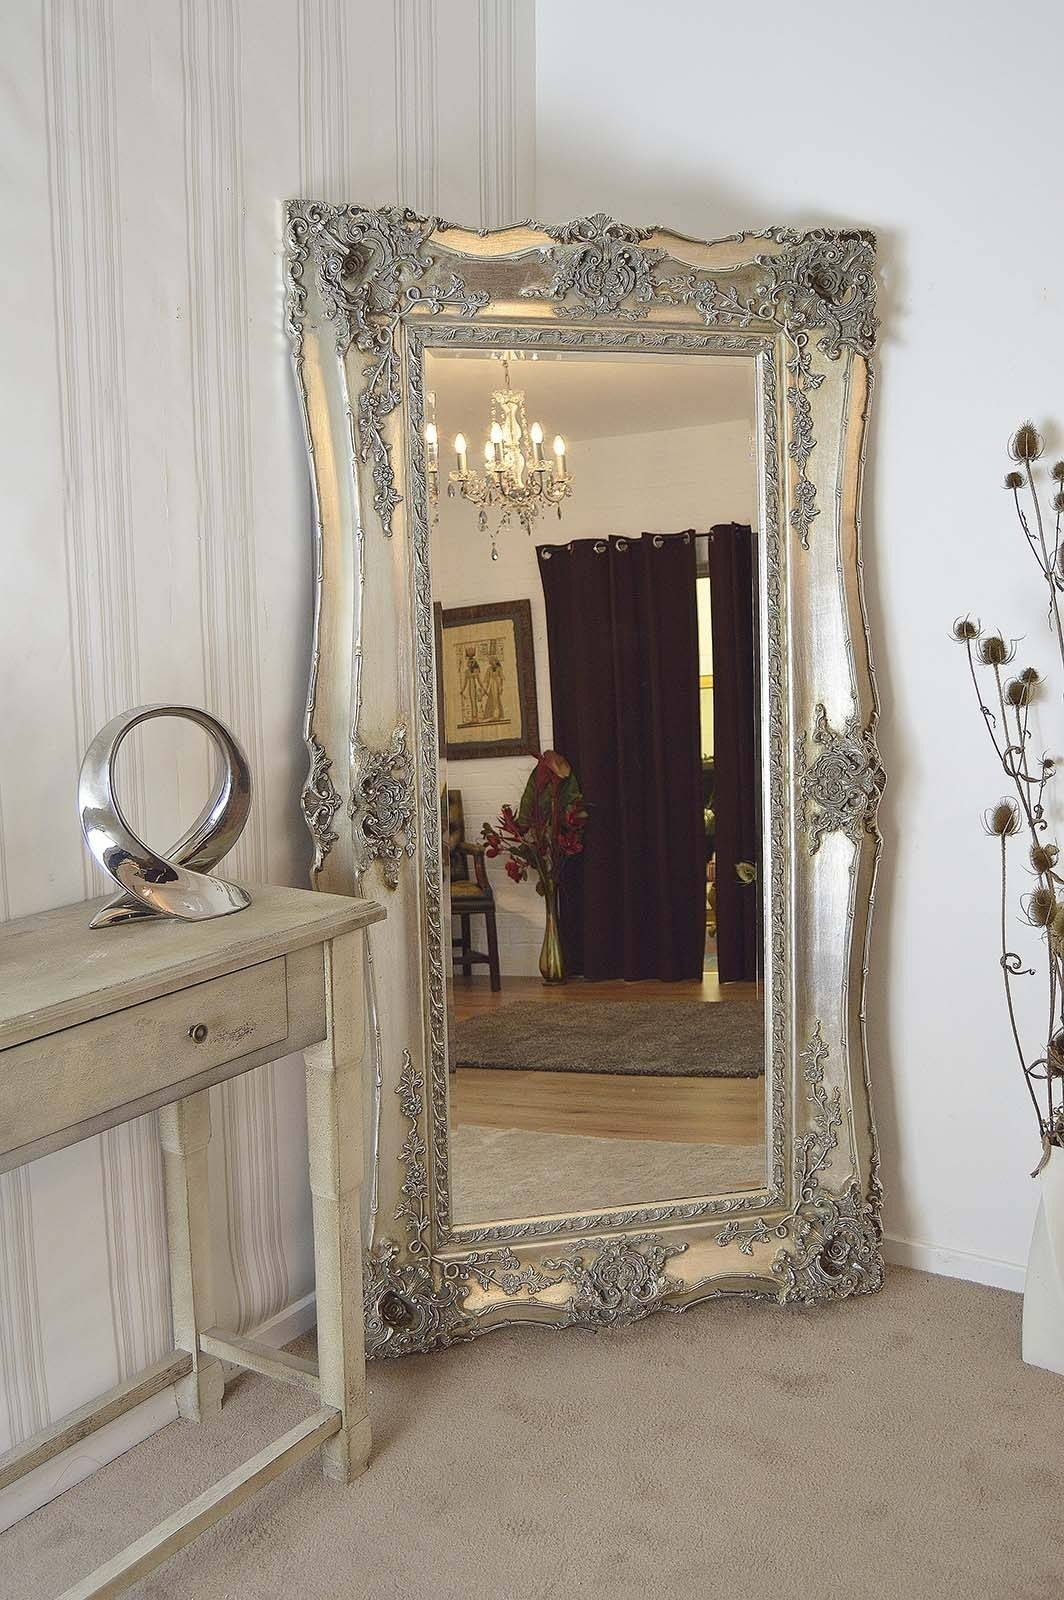 Big Silver Framed Mirror | Vanity Decoration within Big Ornate Mirrors (Image 6 of 15)